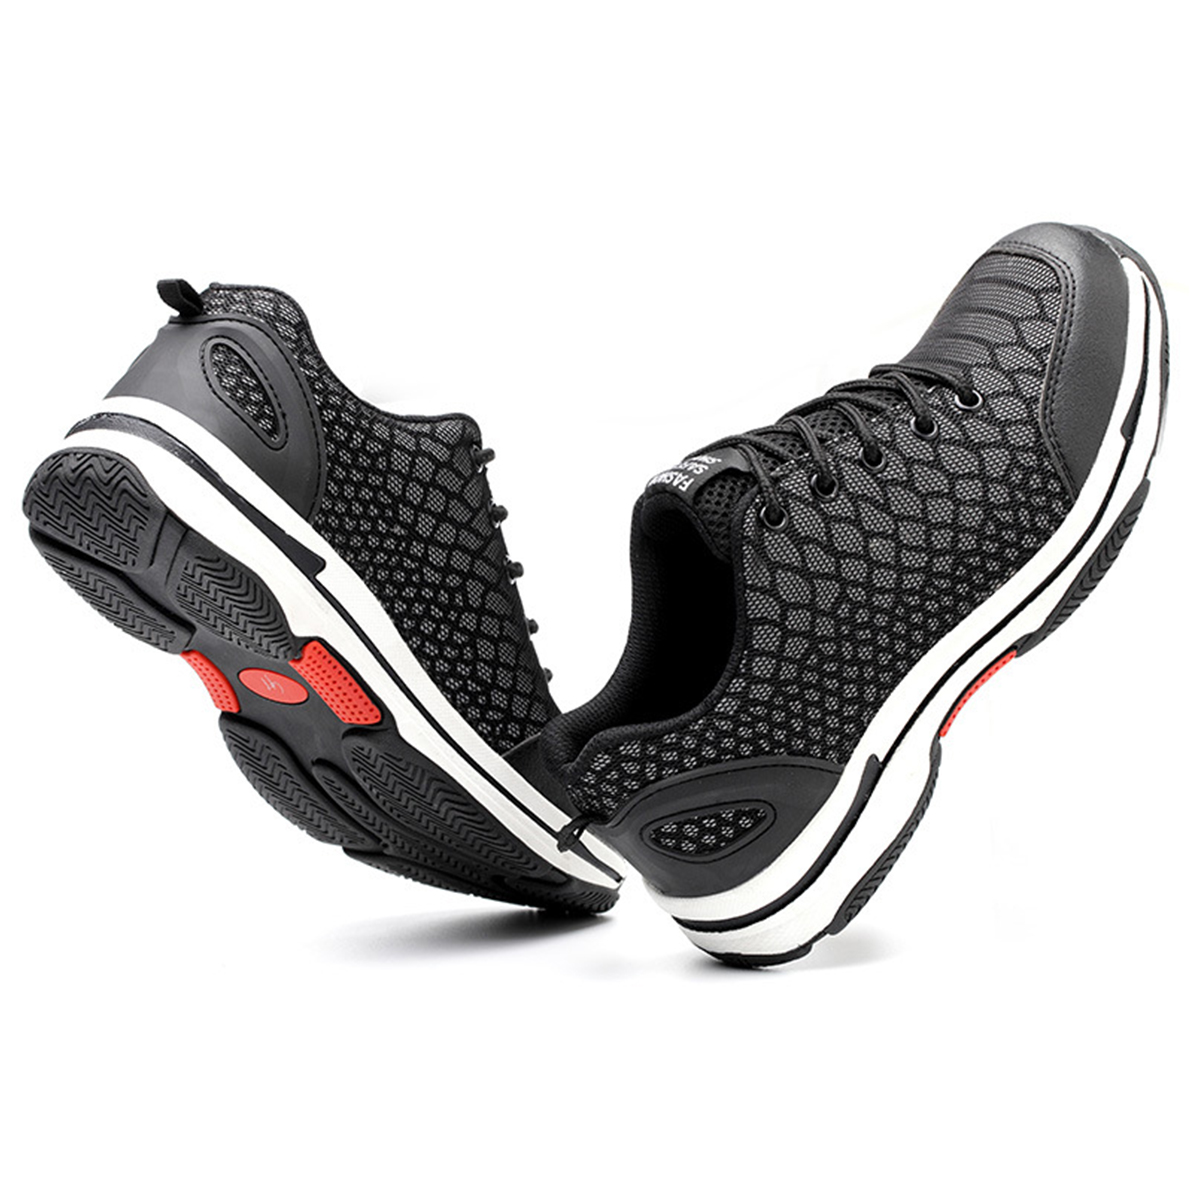 Men Luminous Running Shoes Outdoor Hiking Climbing Shoes Breathable Work Shoes